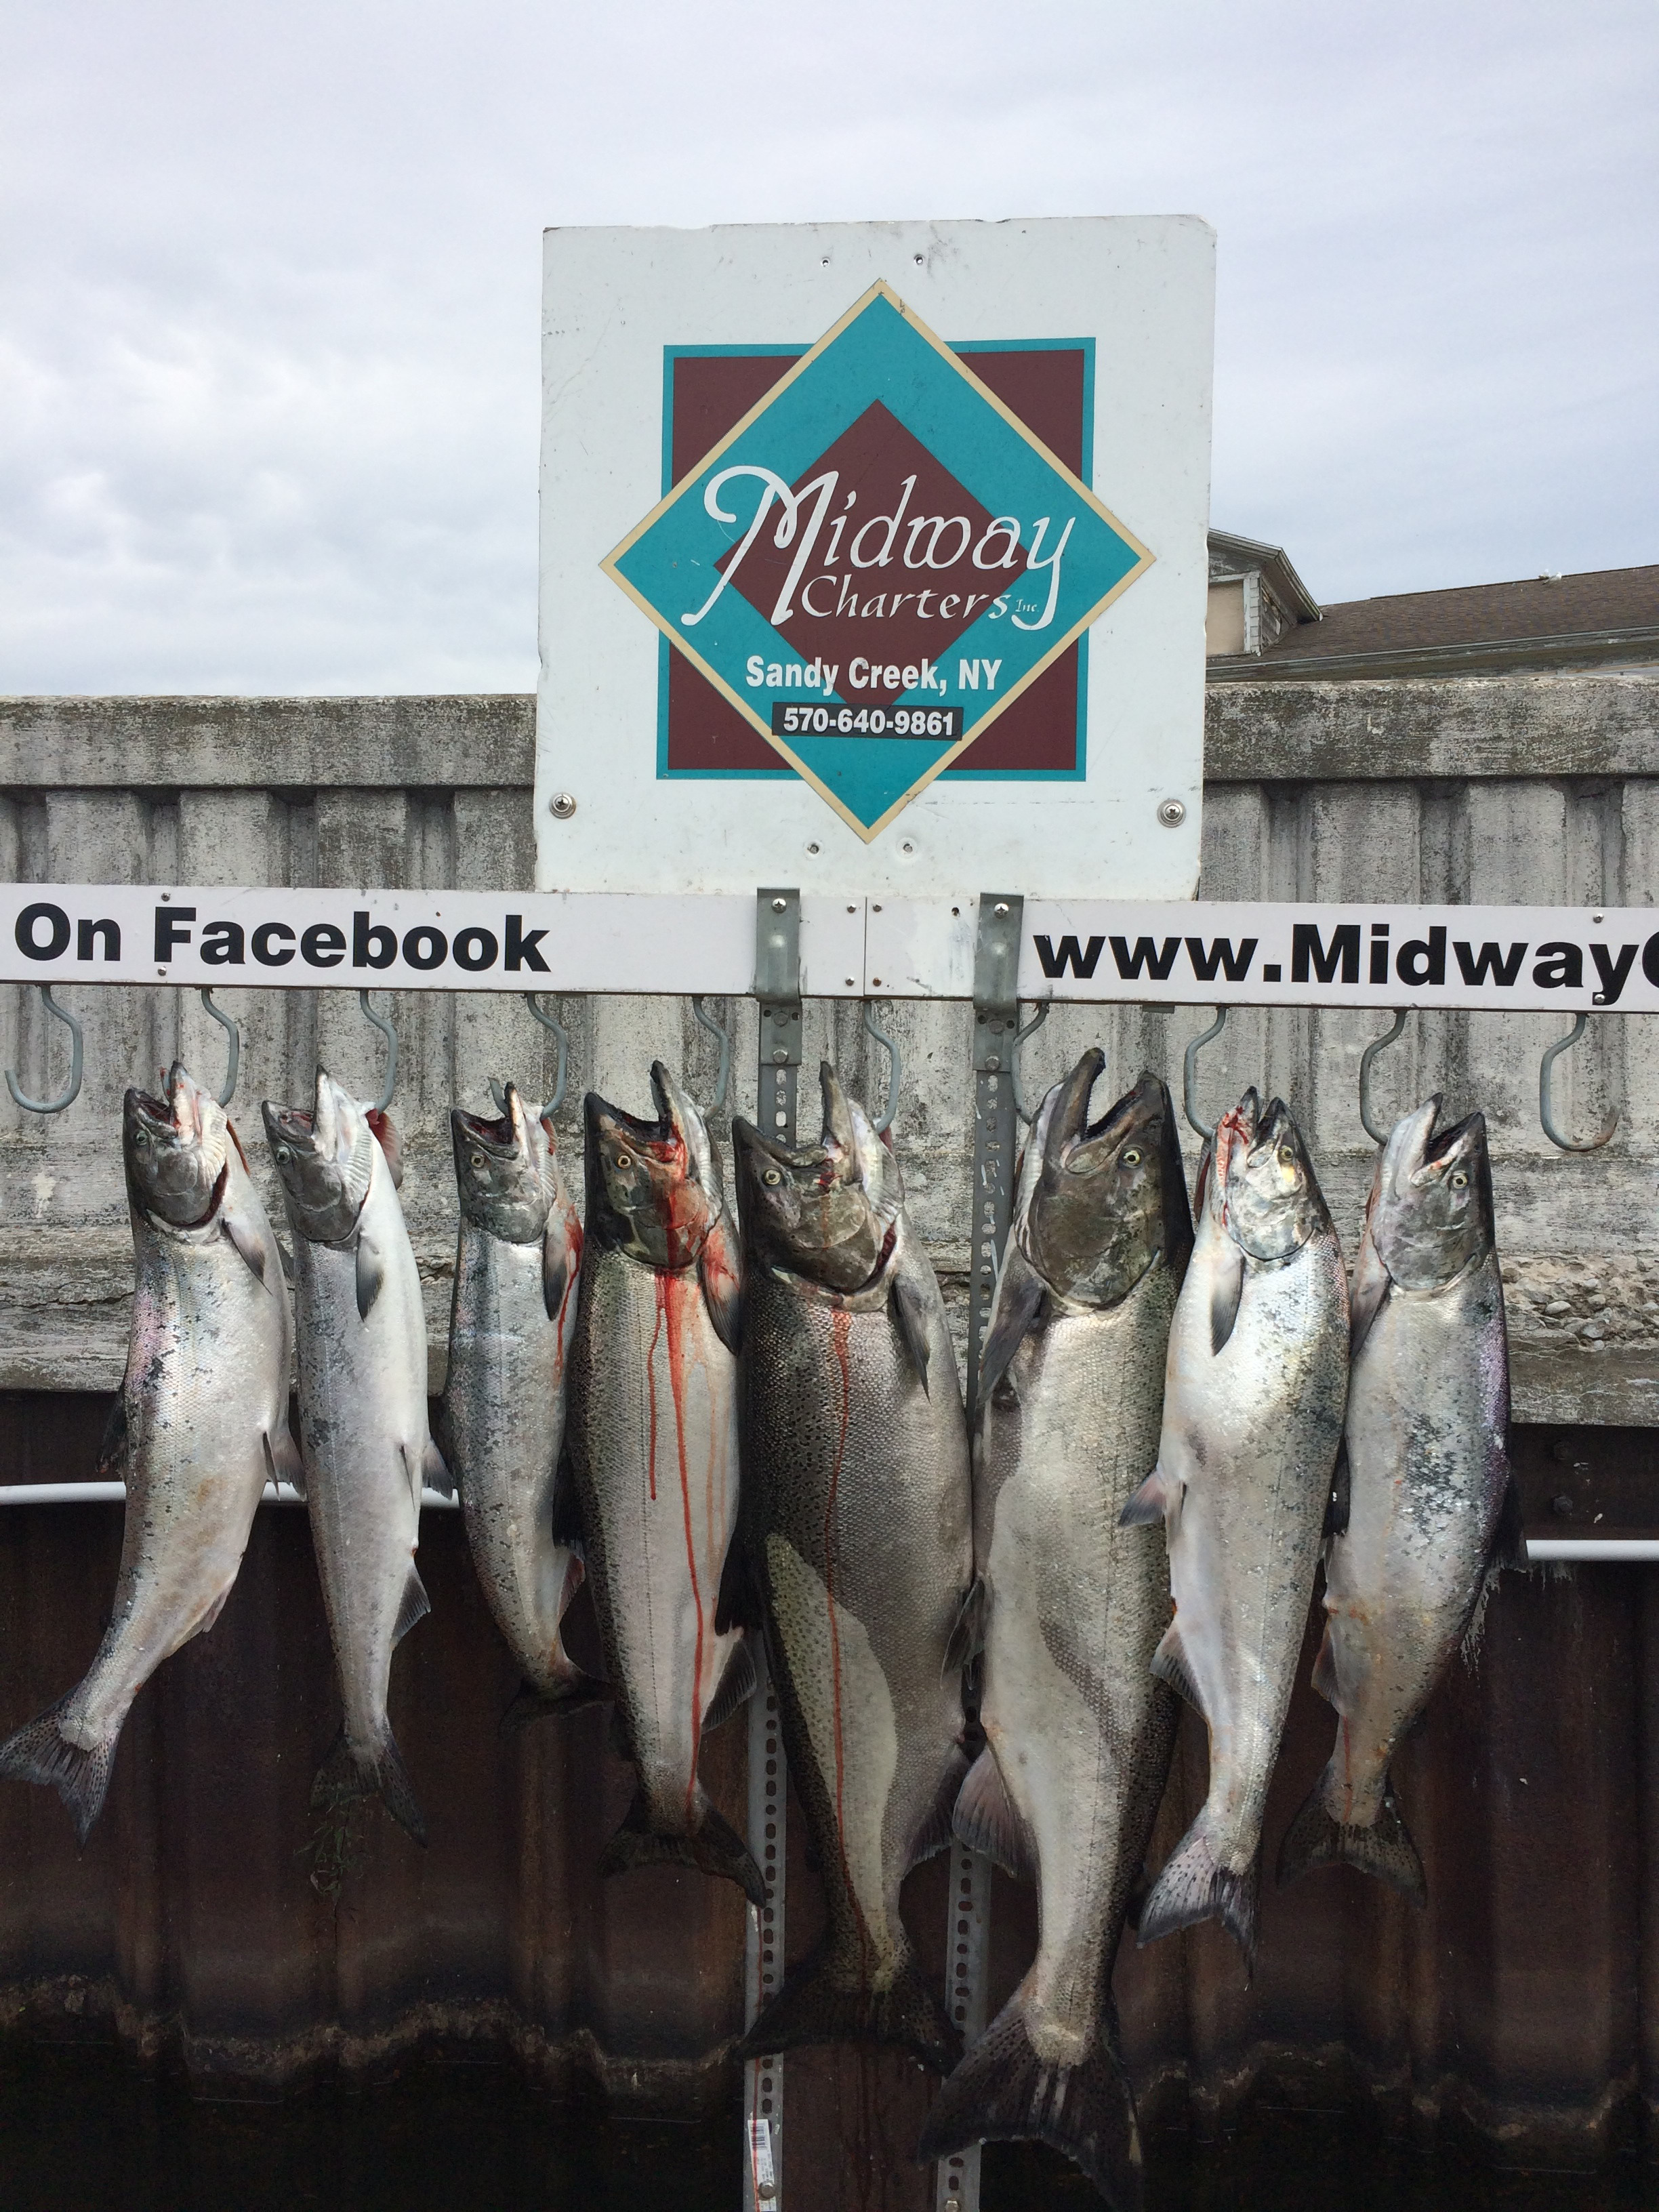 Midway Charters: 6 hour fishing trip